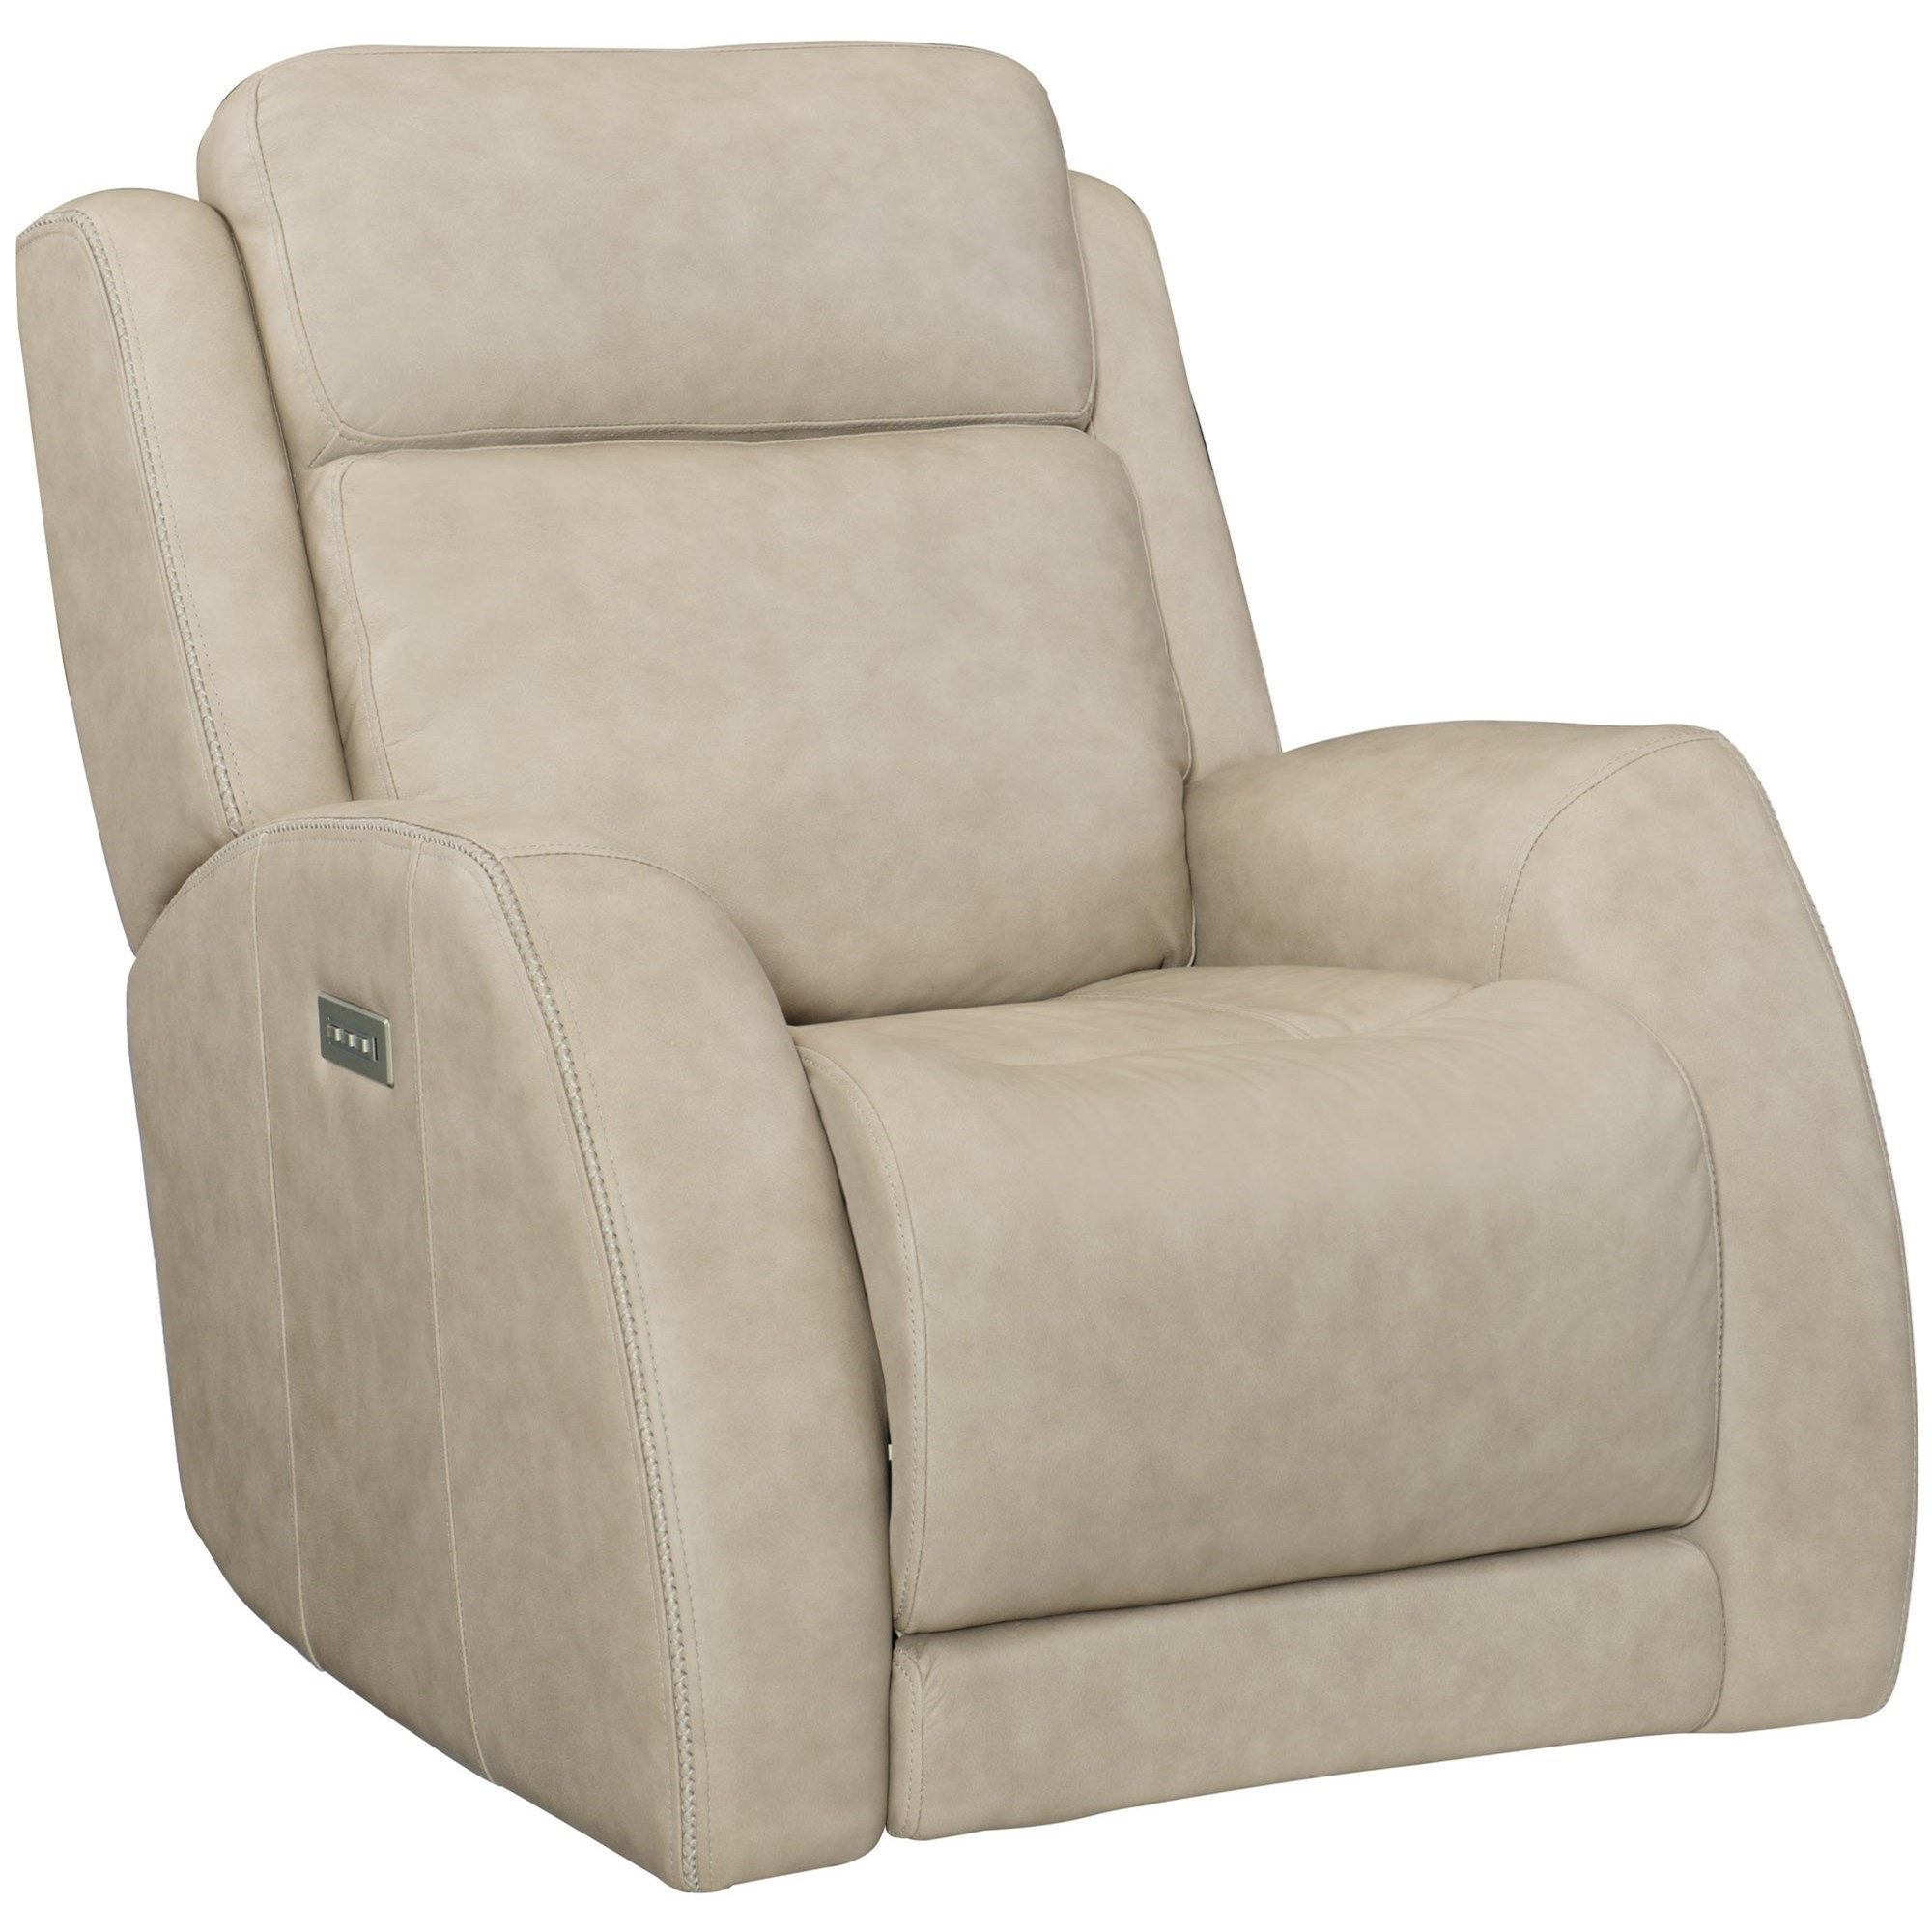 Bernhardt Rawlings 193rl Casual Power Glider Recliner With